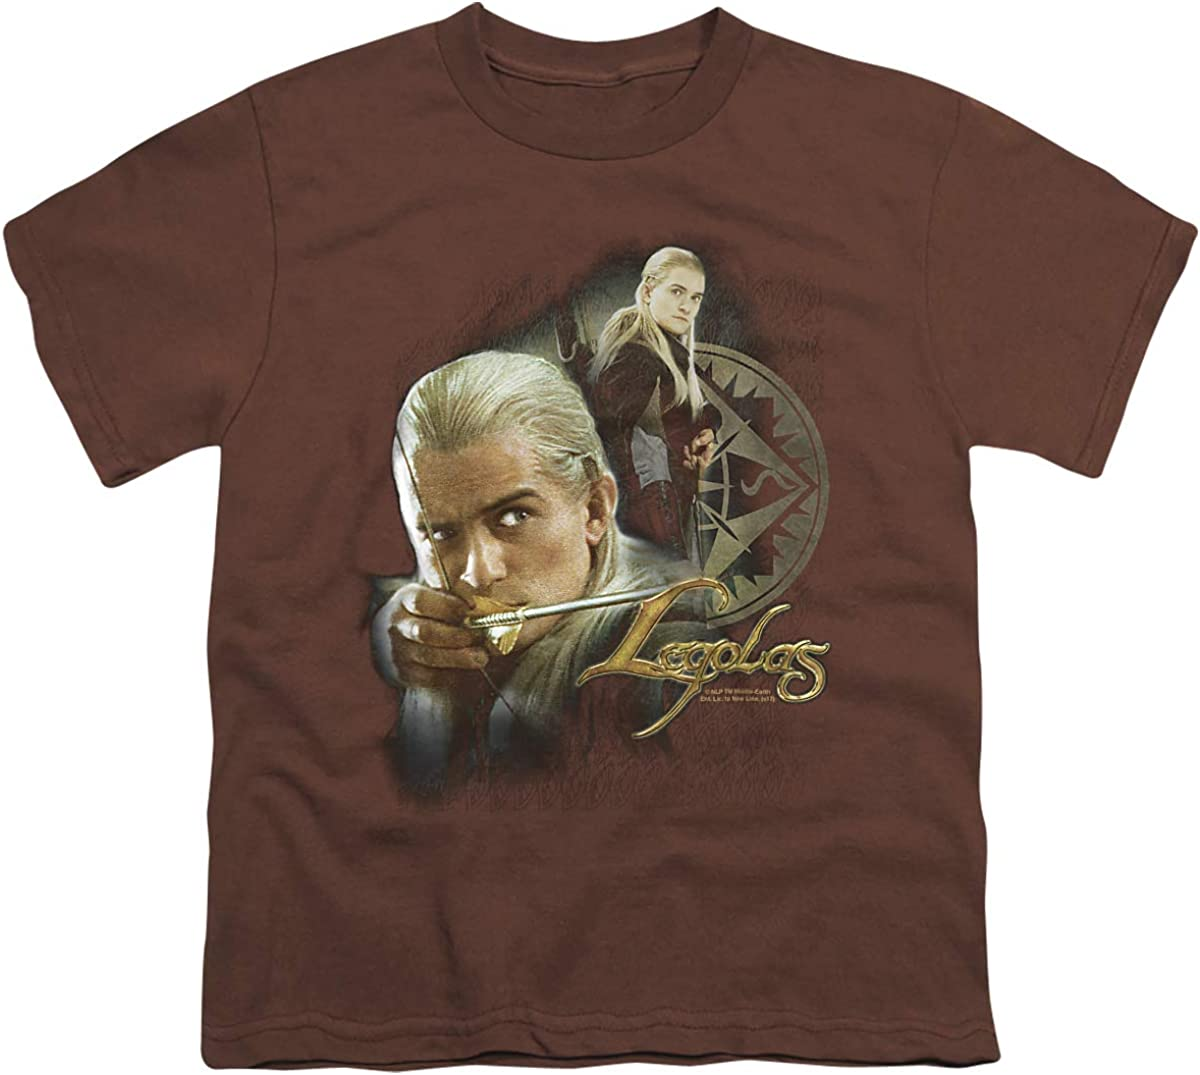 Lord of The Rings Legolas Unisex Youth T Shirt, Coffee, Small